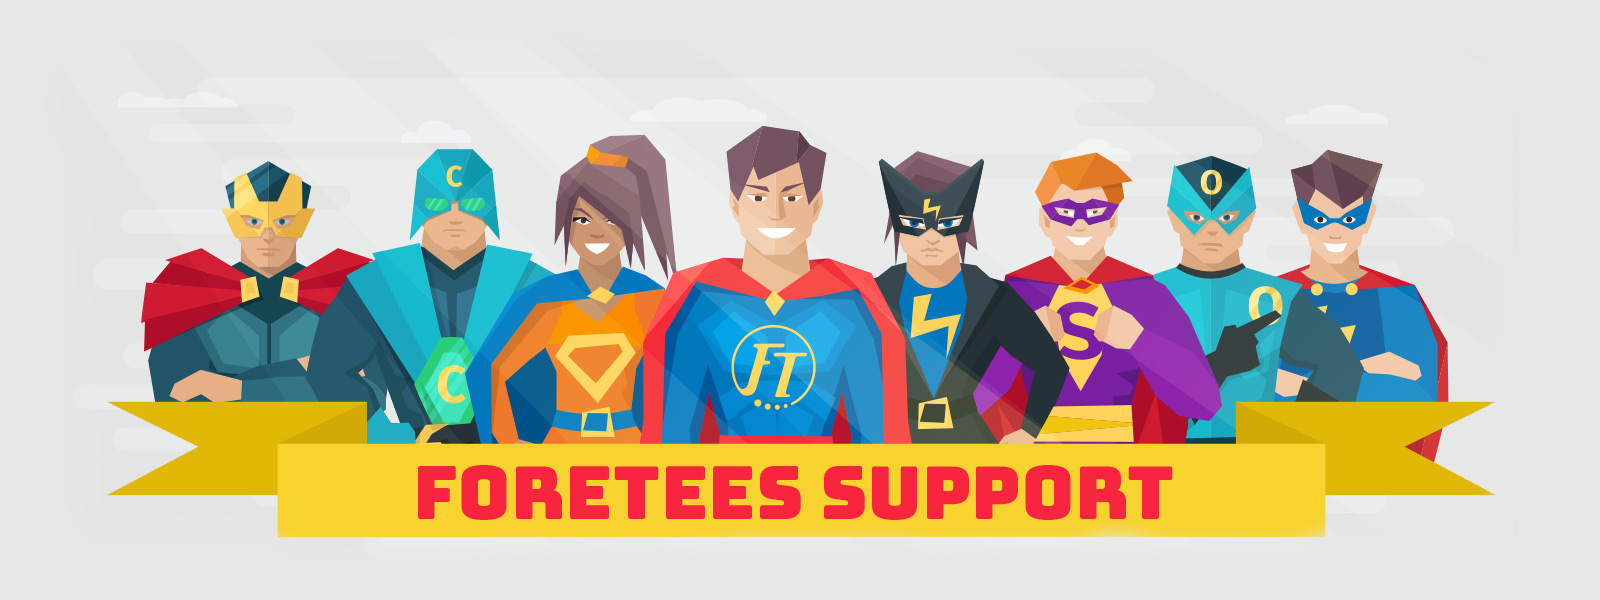 foretees support